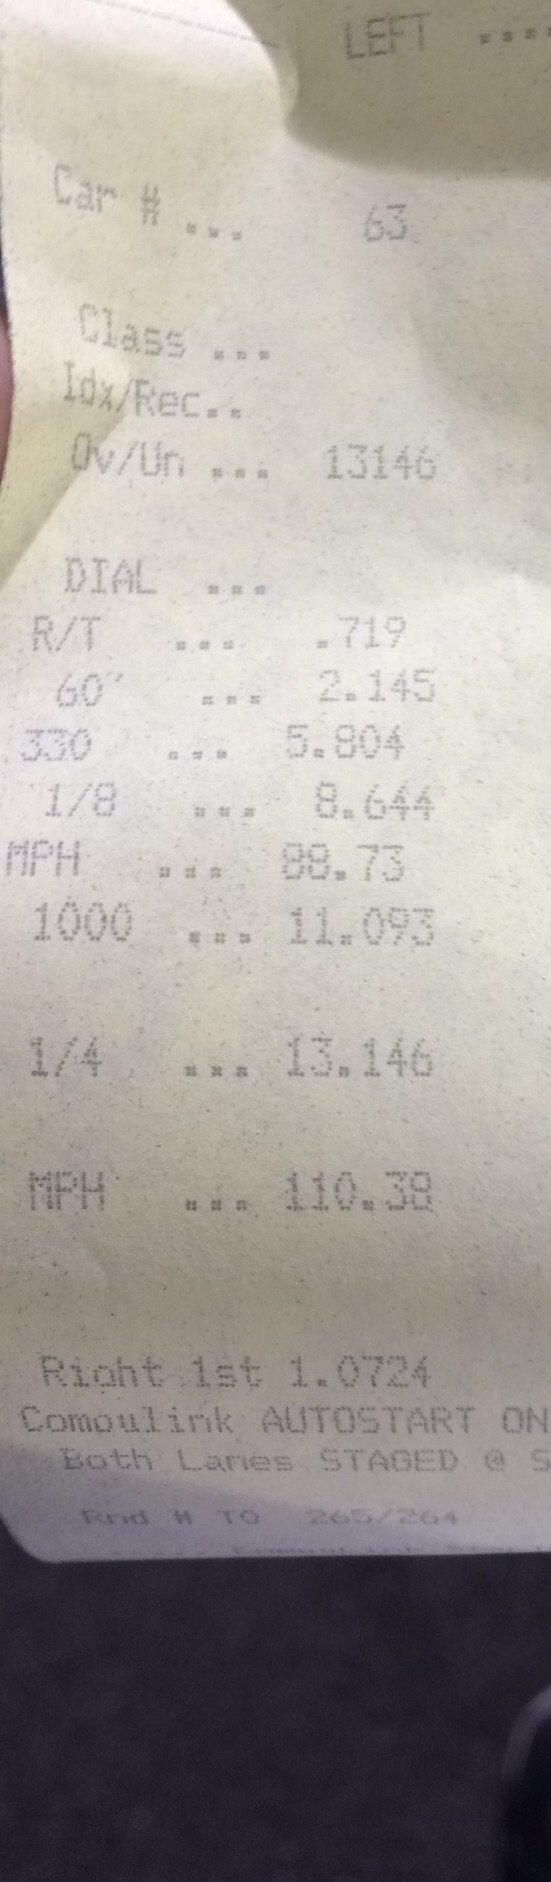 Ford Focus Timeslip Scan